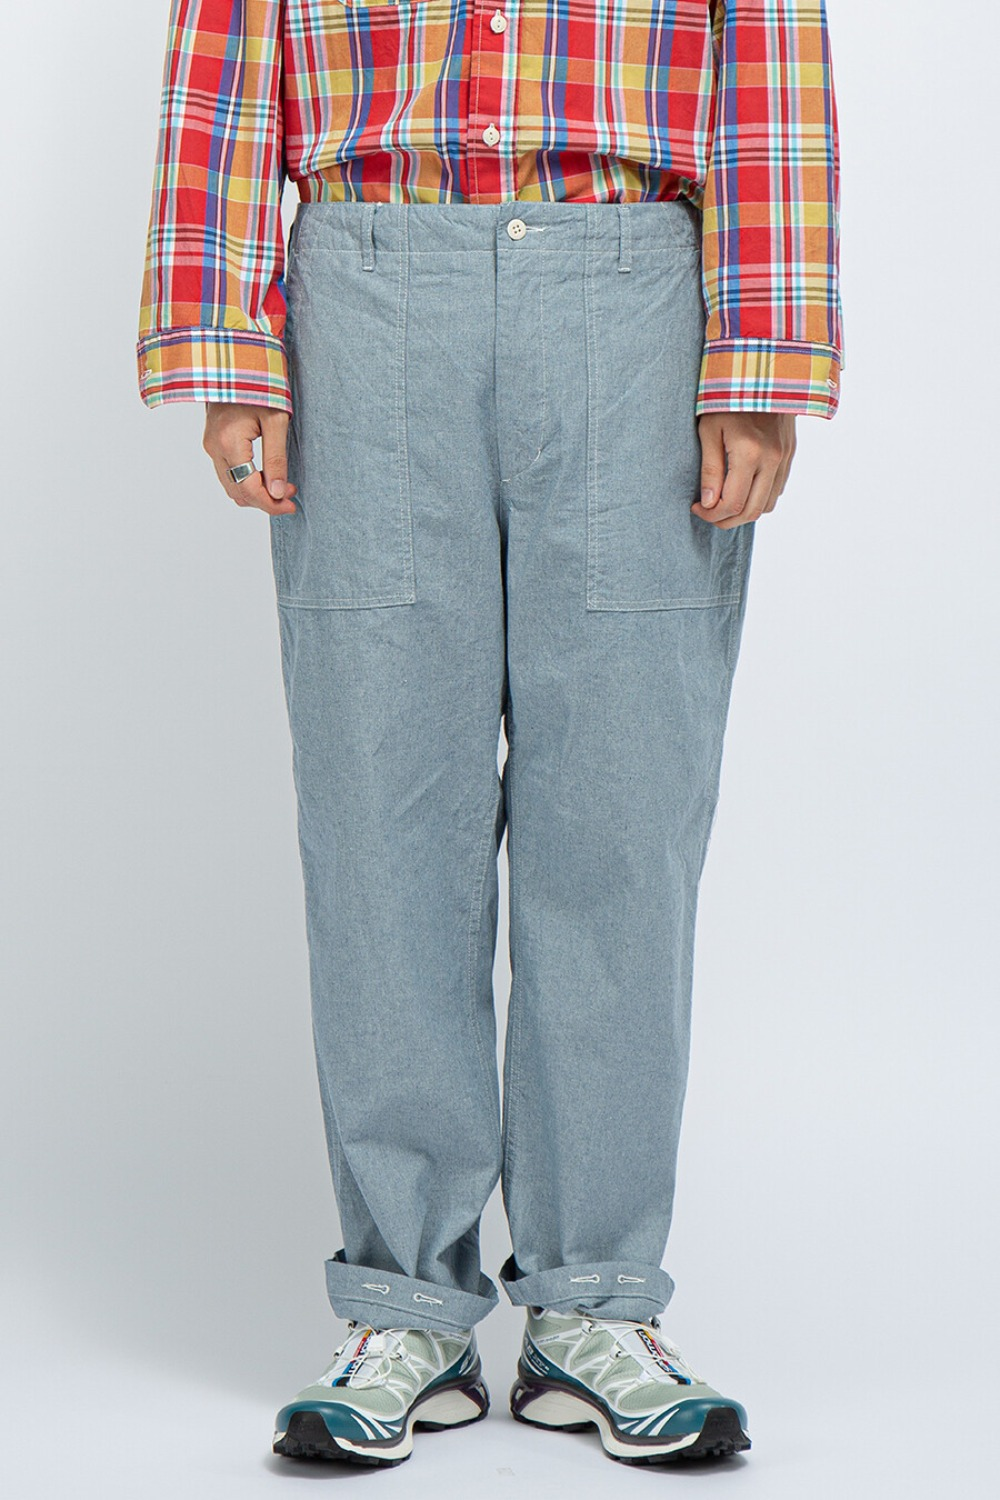 FATIGUE PANT BLUE UPCYCLED CHAMBRAY